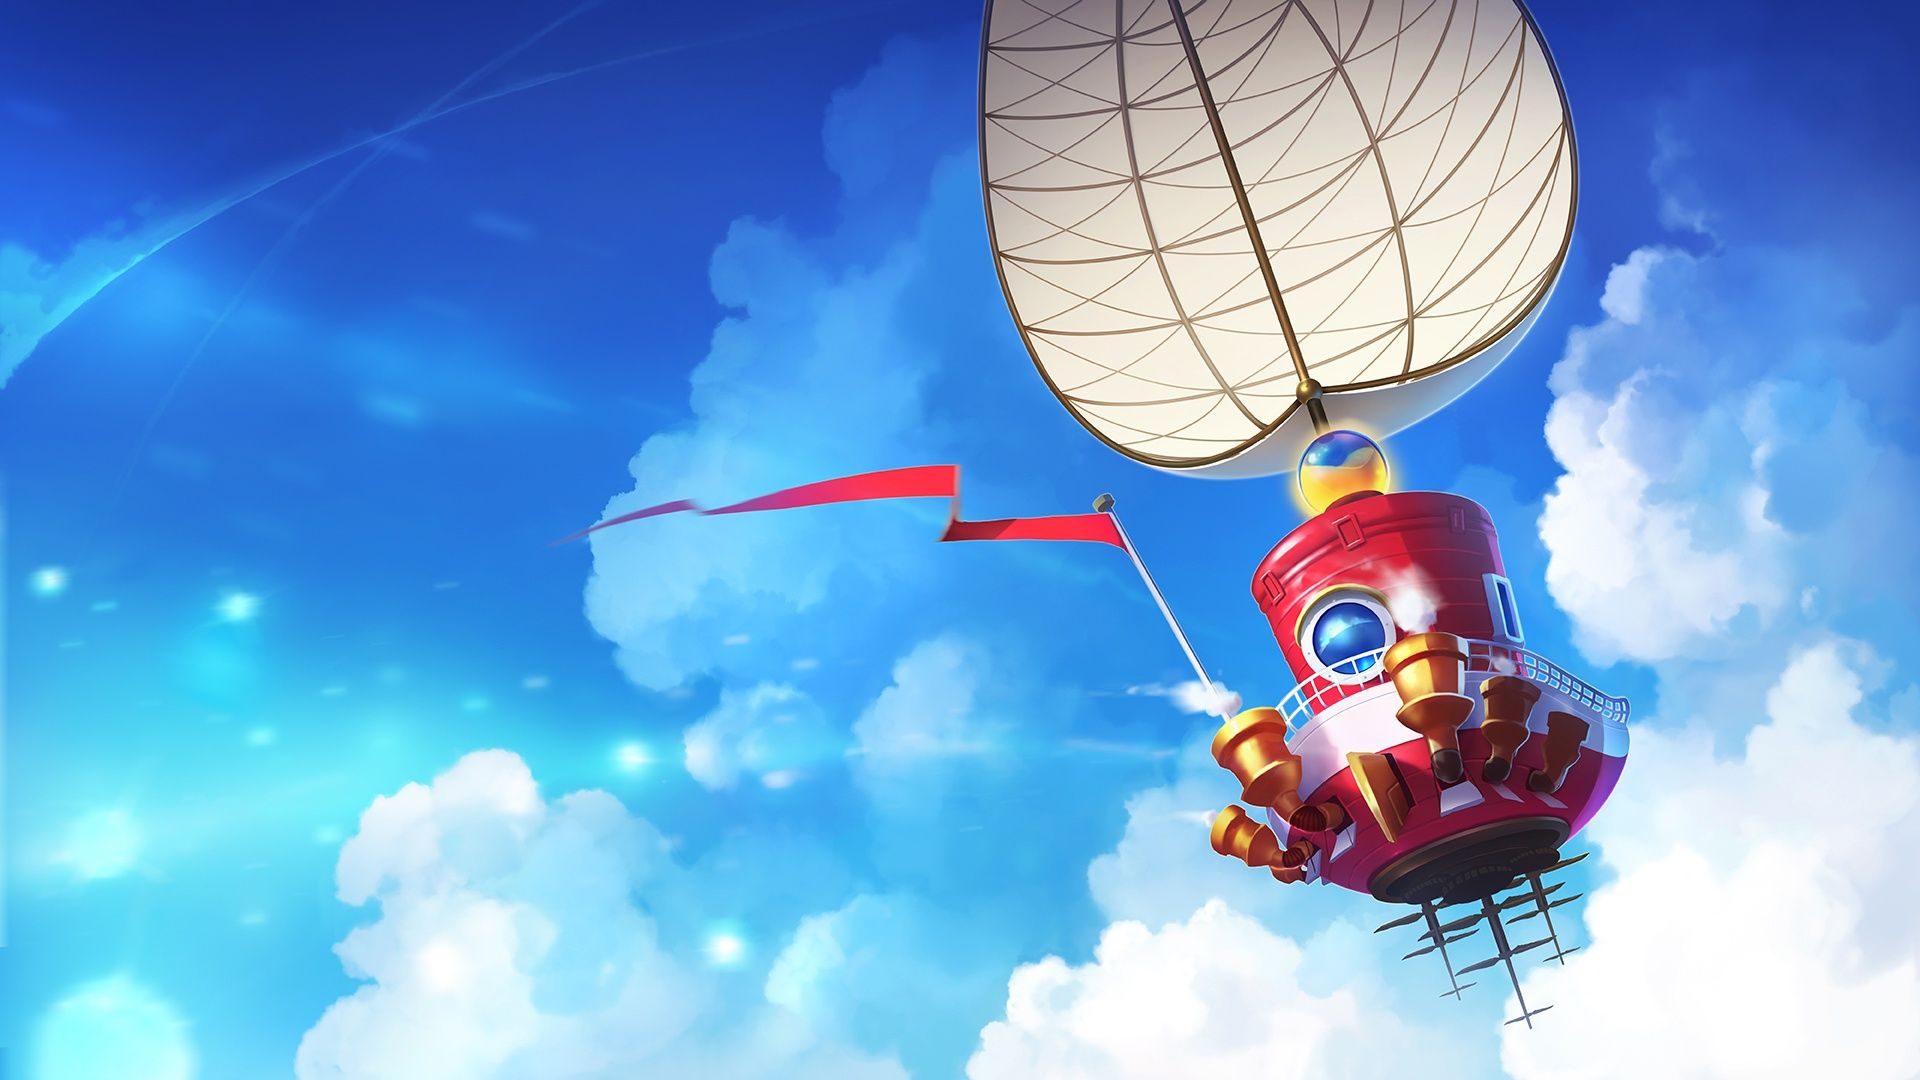 Download Wallpaper The Sky Clouds Ship Art Sail Nintendo